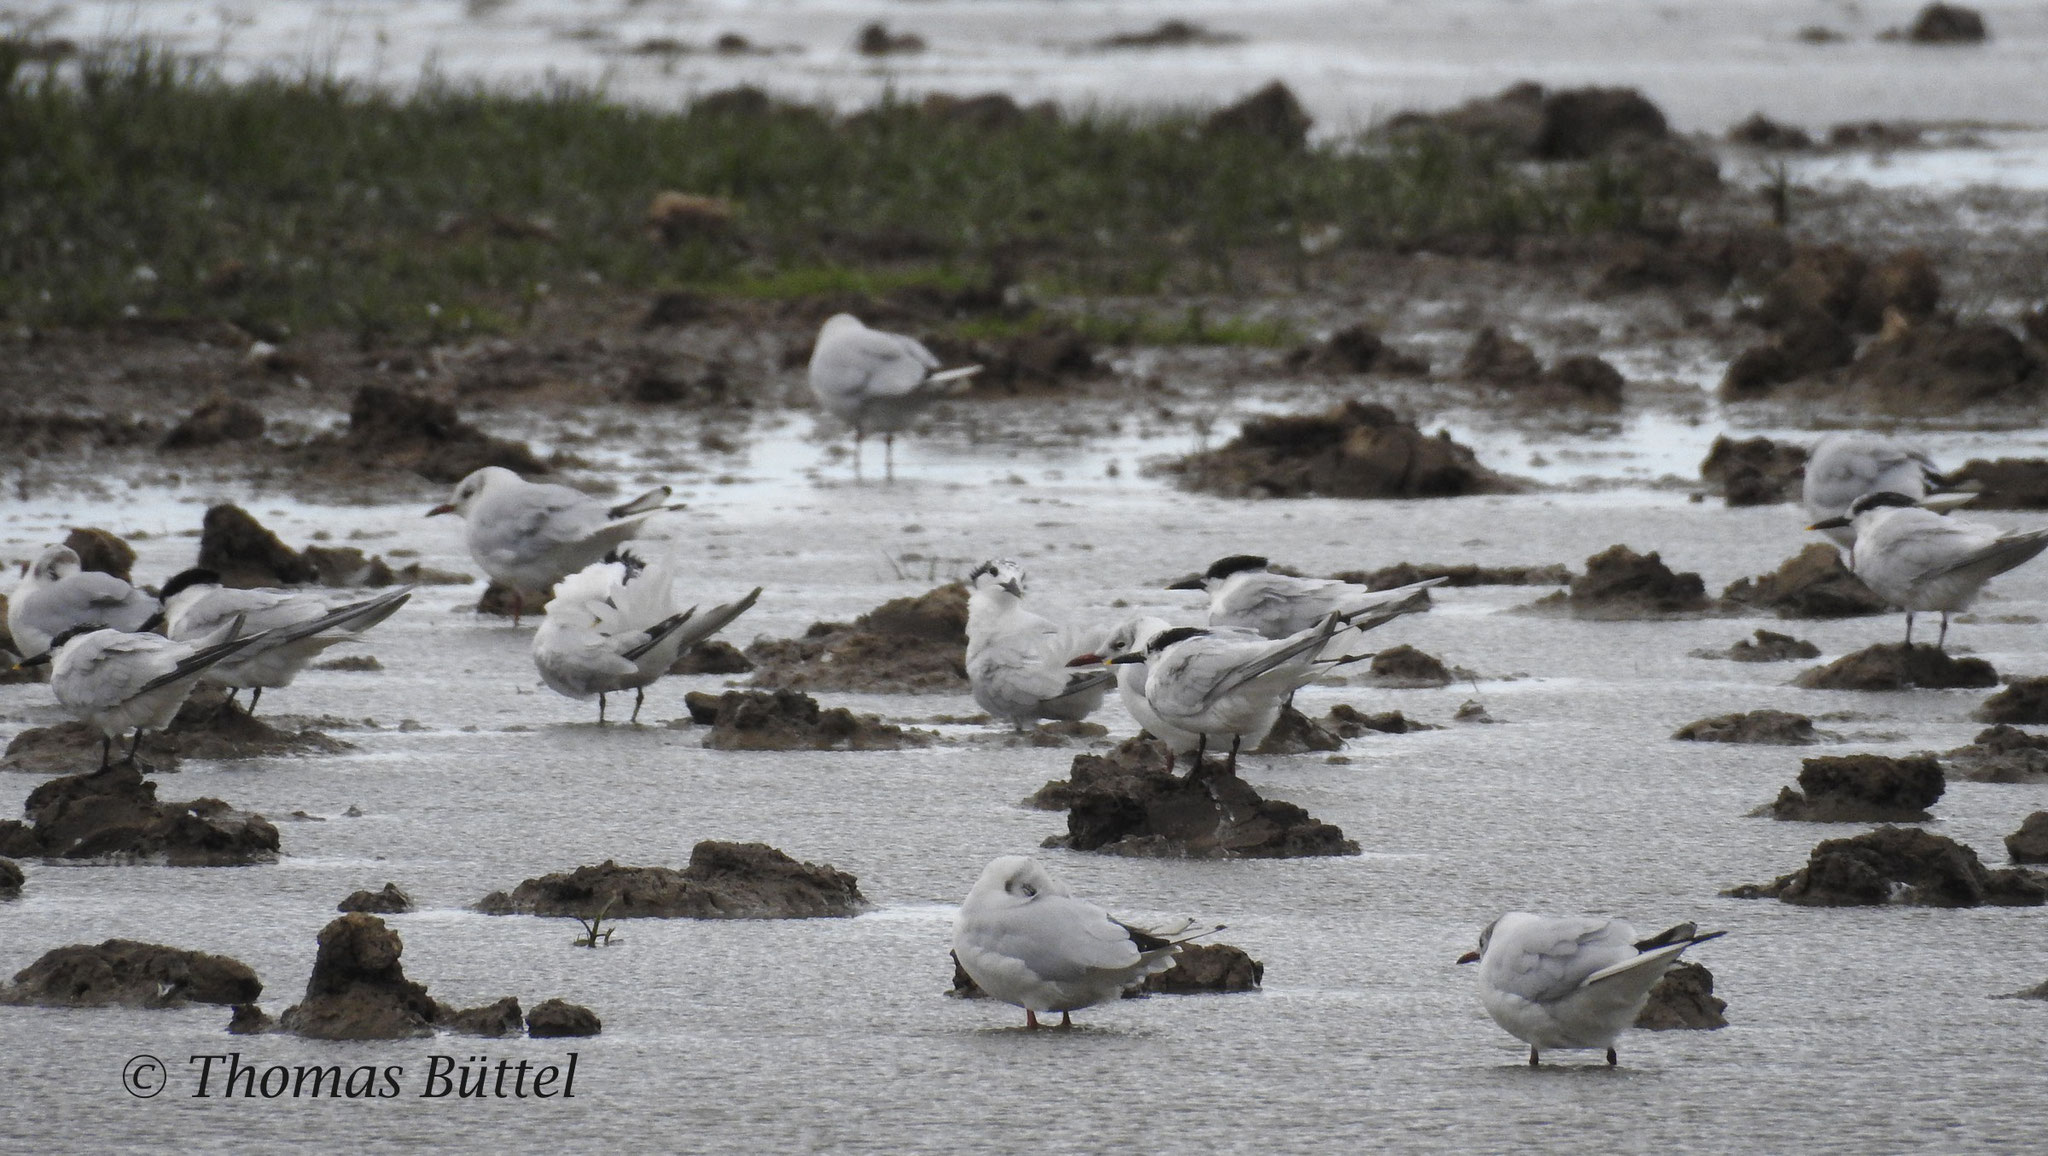 Sandwich Terns in midst of Black-headed Gulls